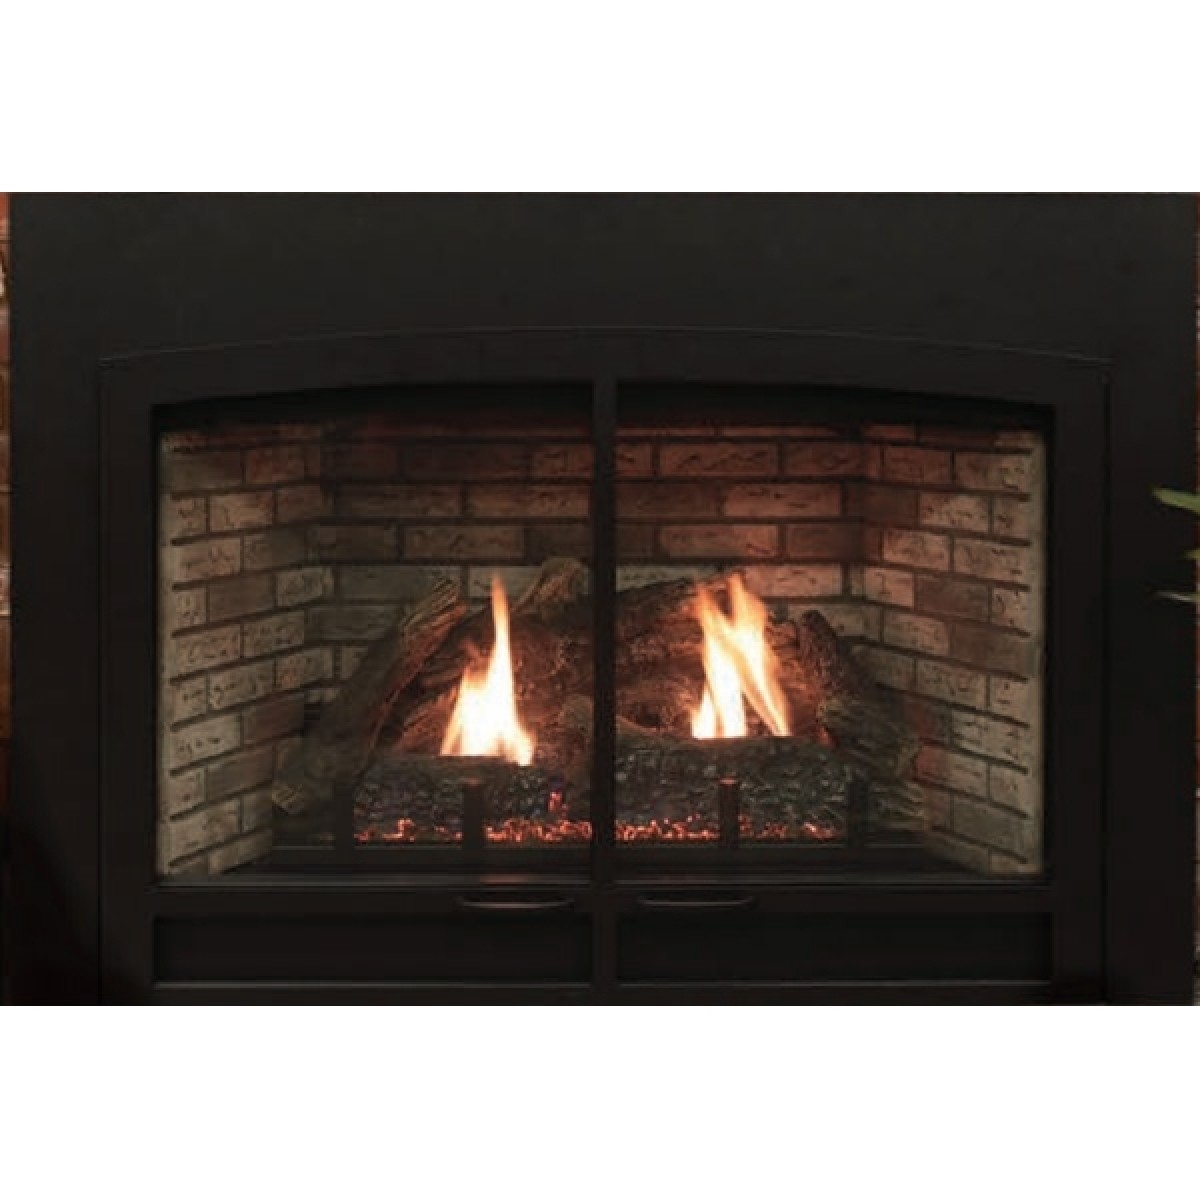 Propane Fireplace Inserts Empire Innsbrook Direct Vent Clean Face Traditional Fireplace Insert